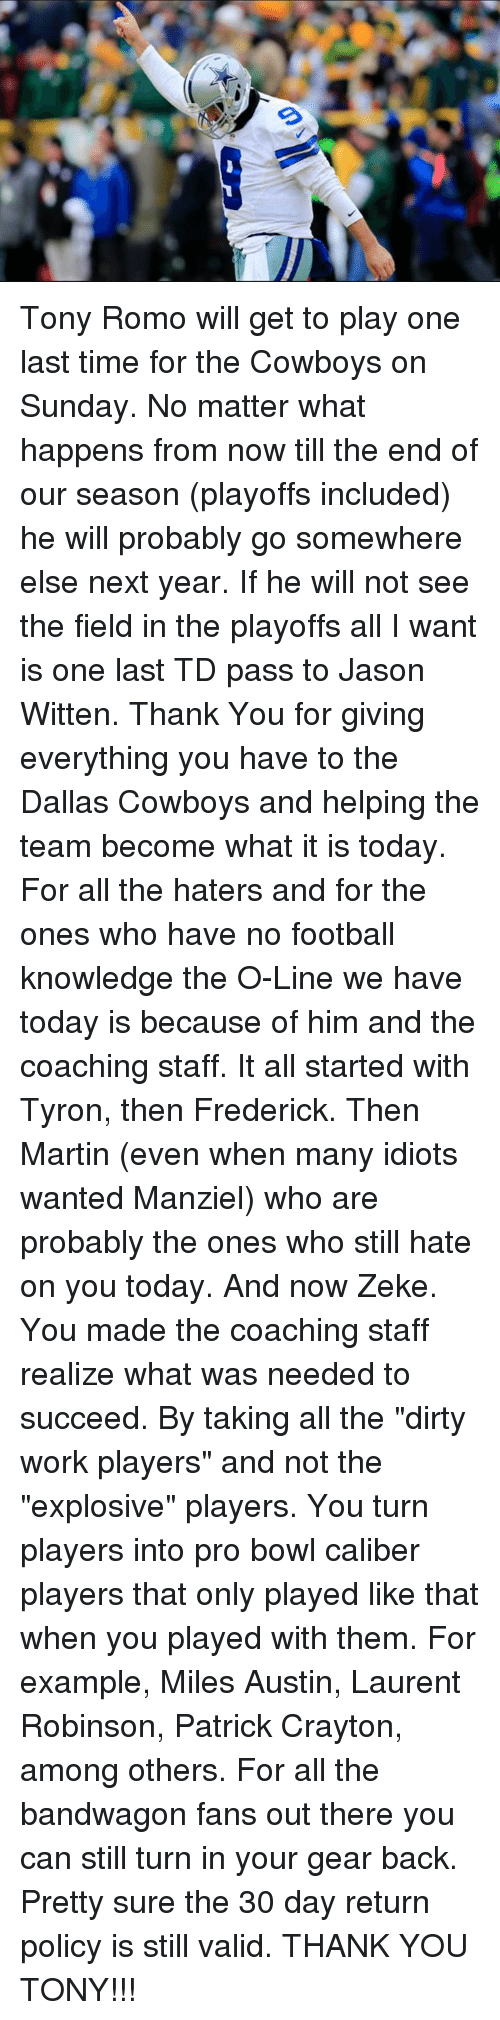 """jason witten: Tony Romo will get to play one last time for the Cowboys on Sunday. No matter what happens from now till the end of our season (playoffs included) he will probably go somewhere else next year. If he will not see the field in the playoffs all I want is one last TD pass to Jason Witten. Thank You for giving everything you have to the Dallas Cowboys and helping the team become what it is today. For all the haters and for the ones who have no football knowledge the O-Line we have today is because of him and the coaching staff. It all started with Tyron, then Frederick. Then Martin (even when many idiots wanted Manziel) who are probably the ones who still hate on you today. And now Zeke. You made the coaching staff realize what was needed to succeed. By taking all the """"dirty work players"""" and not the """"explosive"""" players. You turn players into pro bowl caliber players that only played like that when you played with them. For example, Miles Austin, Laurent Robinson, Patrick Crayton, among others. For all the bandwagon fans out there you can still turn in your gear back. Pretty sure the 30 day return policy is still valid. THANK YOU TONY!!!"""